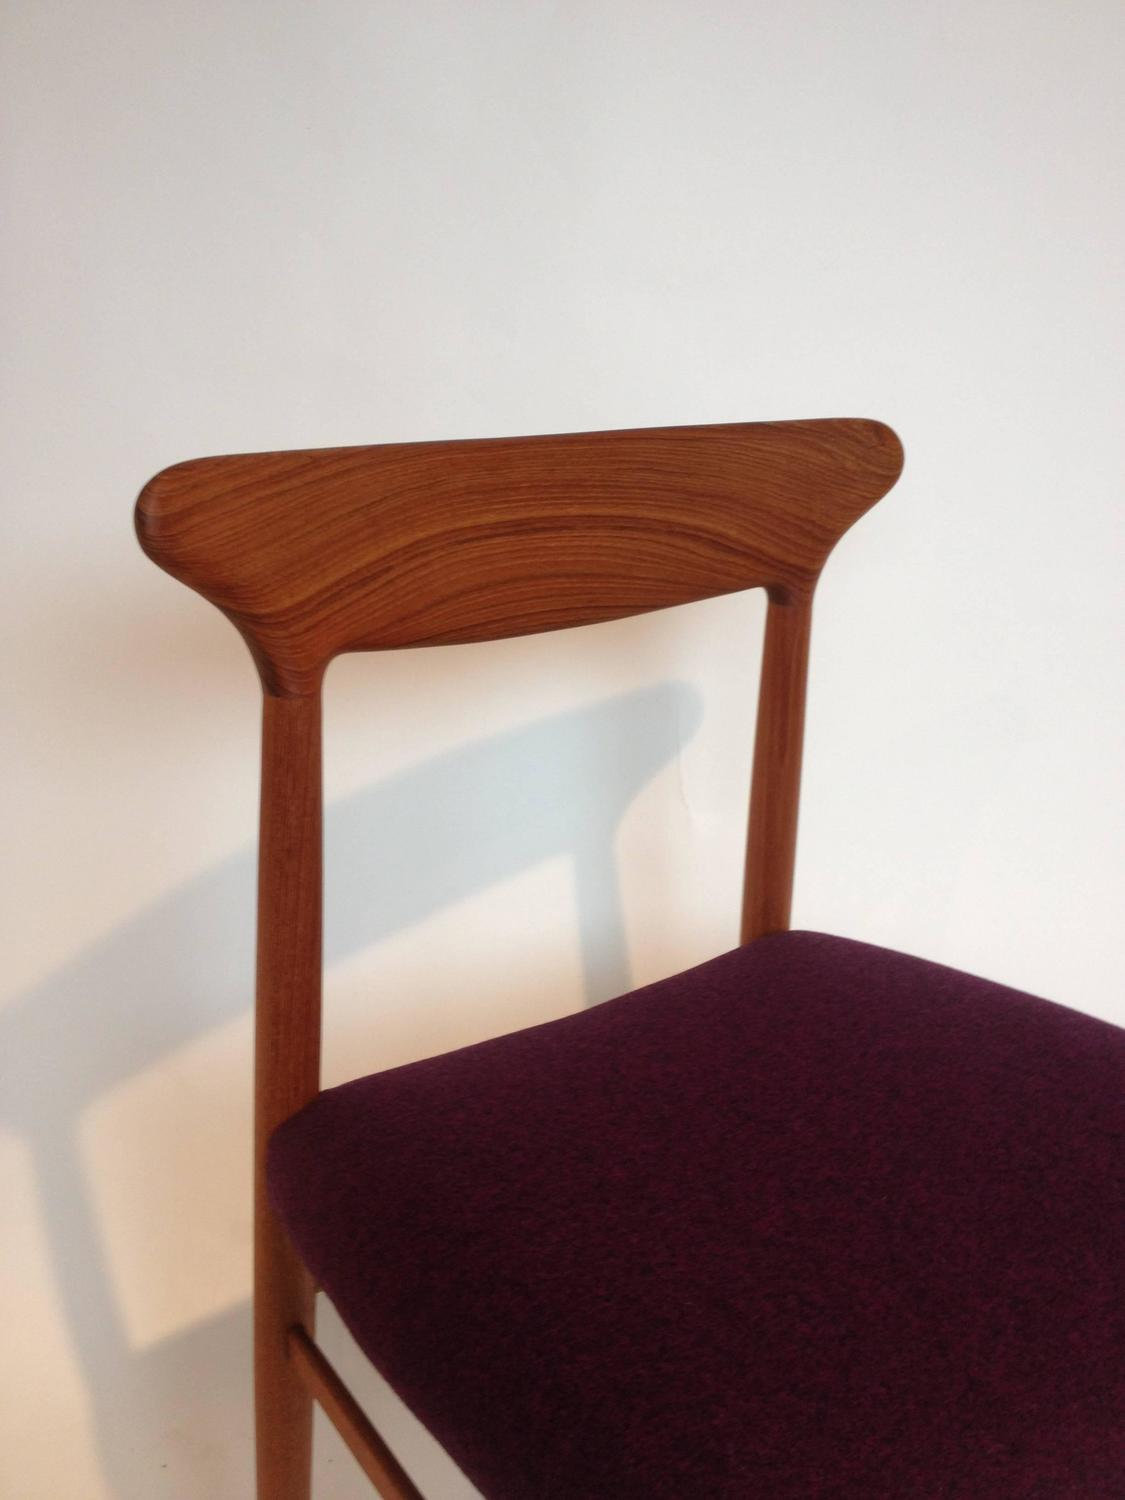 mid century modern teak dining or occasional chair by dyrlund denmark